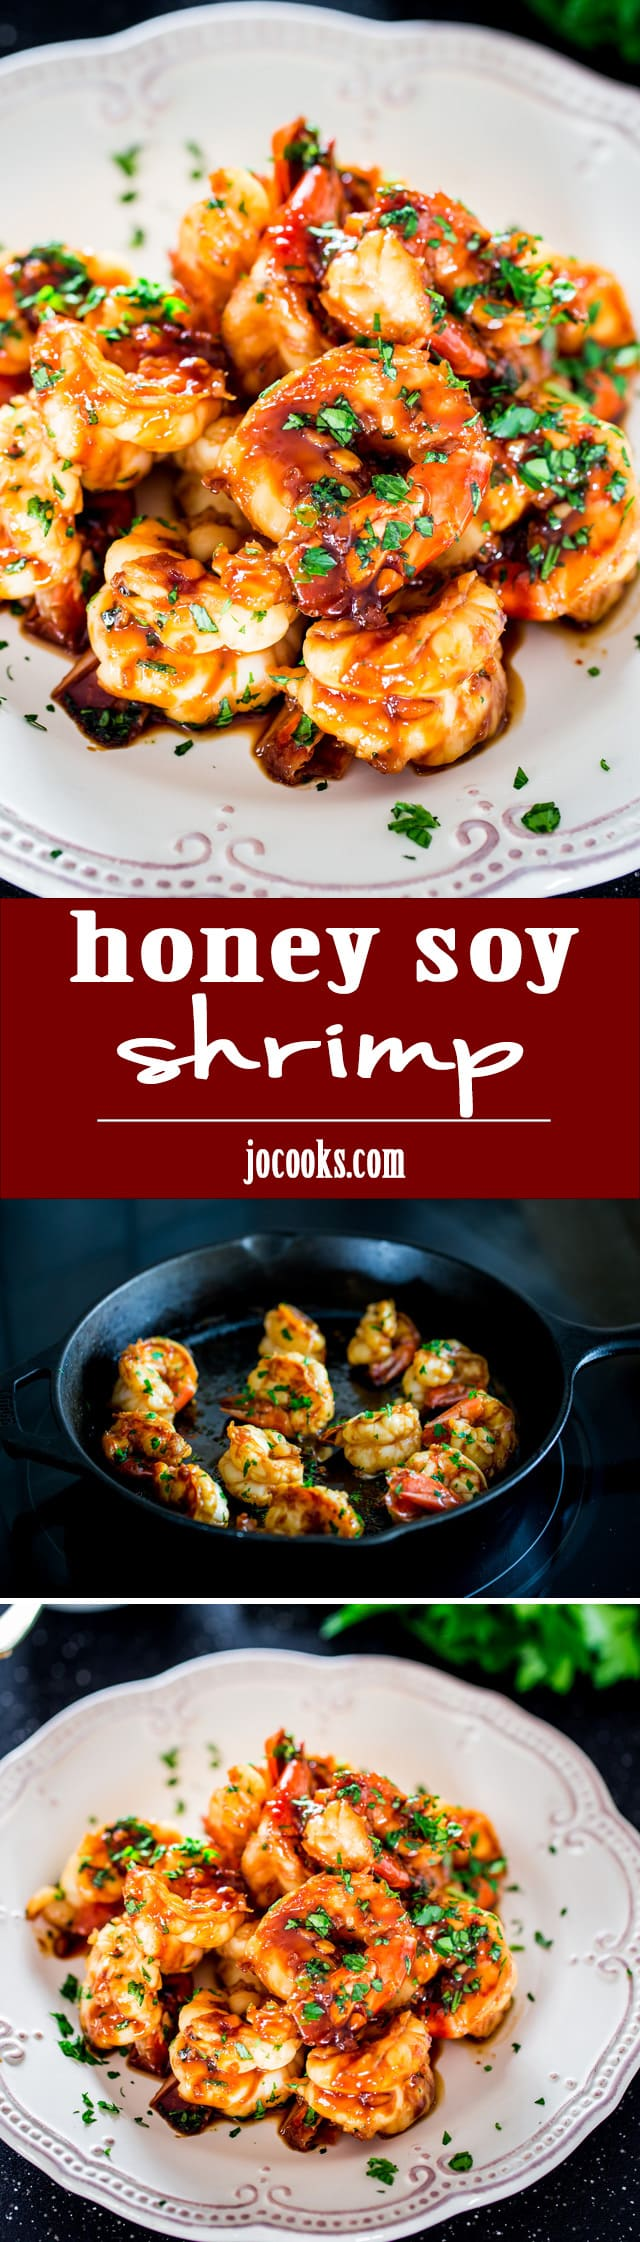 Honey Soy Shrimp  - This incredible sweet and salty shrimp is ready in just under 15 minutes. A delicious appetizer that's sure to impress your guests! www.jocooks.com #shrimp